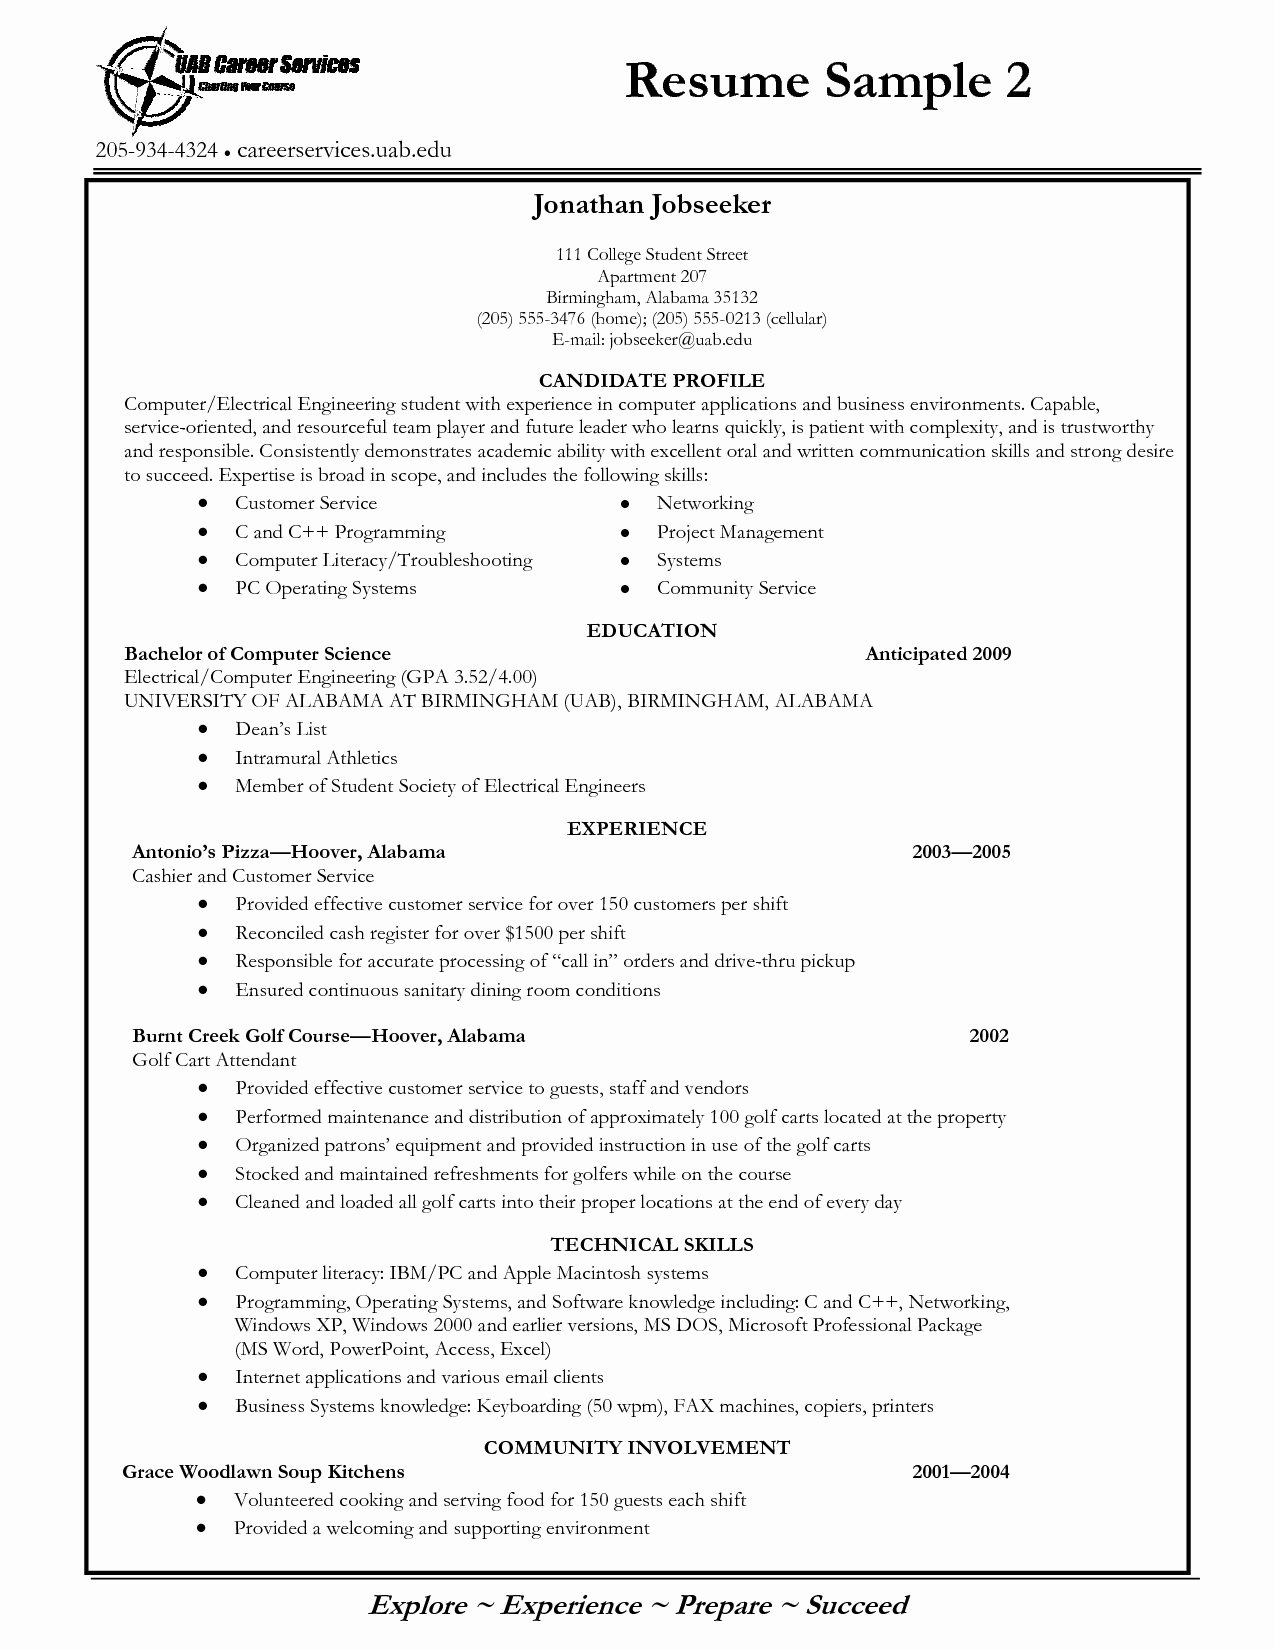 College Graduate Resume Template Best Of Tags College Graduate Resume No Experience College